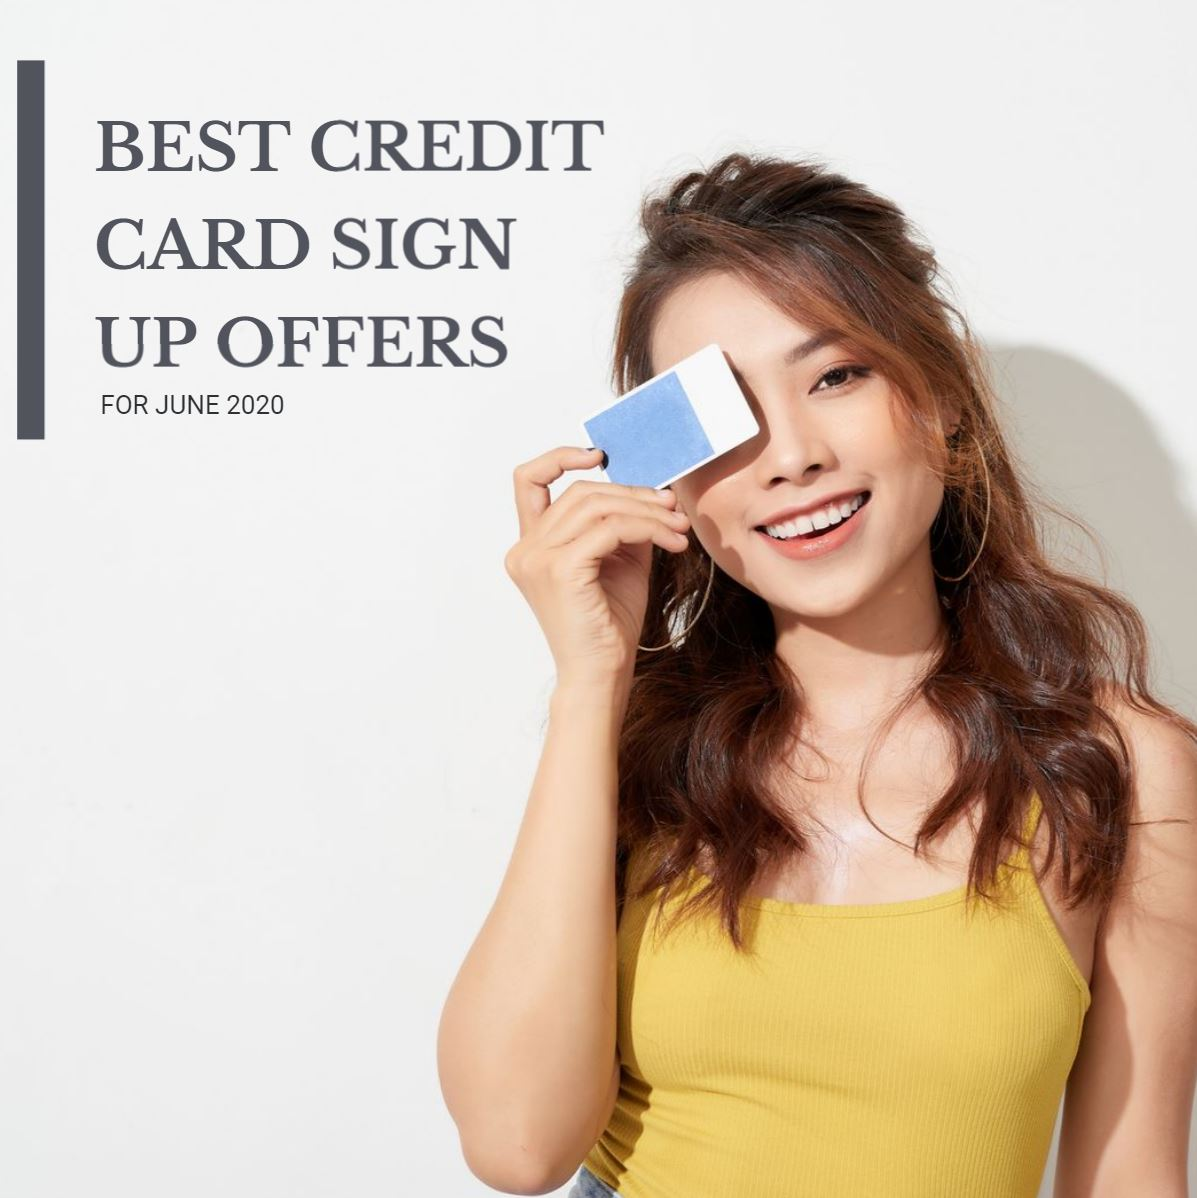 Here's a list of credit card sign-up promotion for the month of June 2020. Get up to $200 cash, cashback, Apple AirPods, miles and travel luggage!